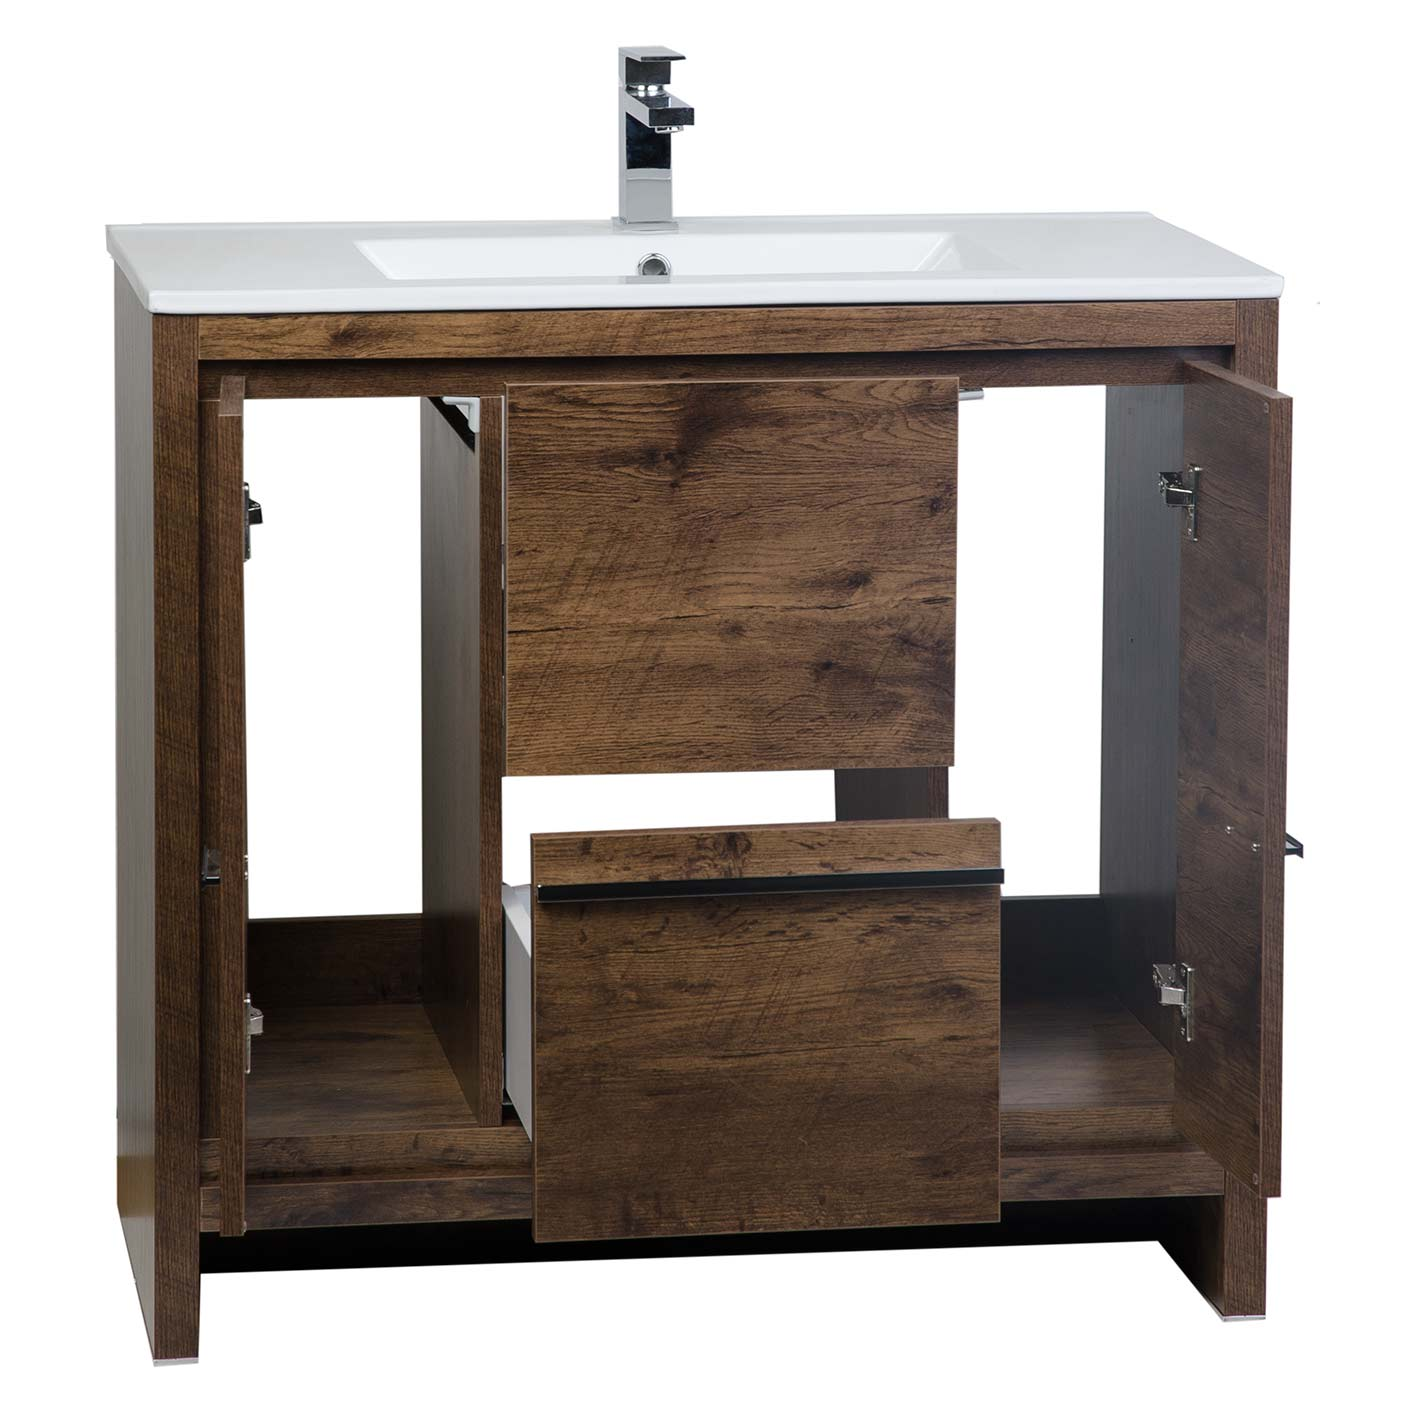 Contemporary bathroom vanities 36 inch - Cbi Enna 36 Inch Rosewood Modern Bathroom Vanity Tn La900 Rw